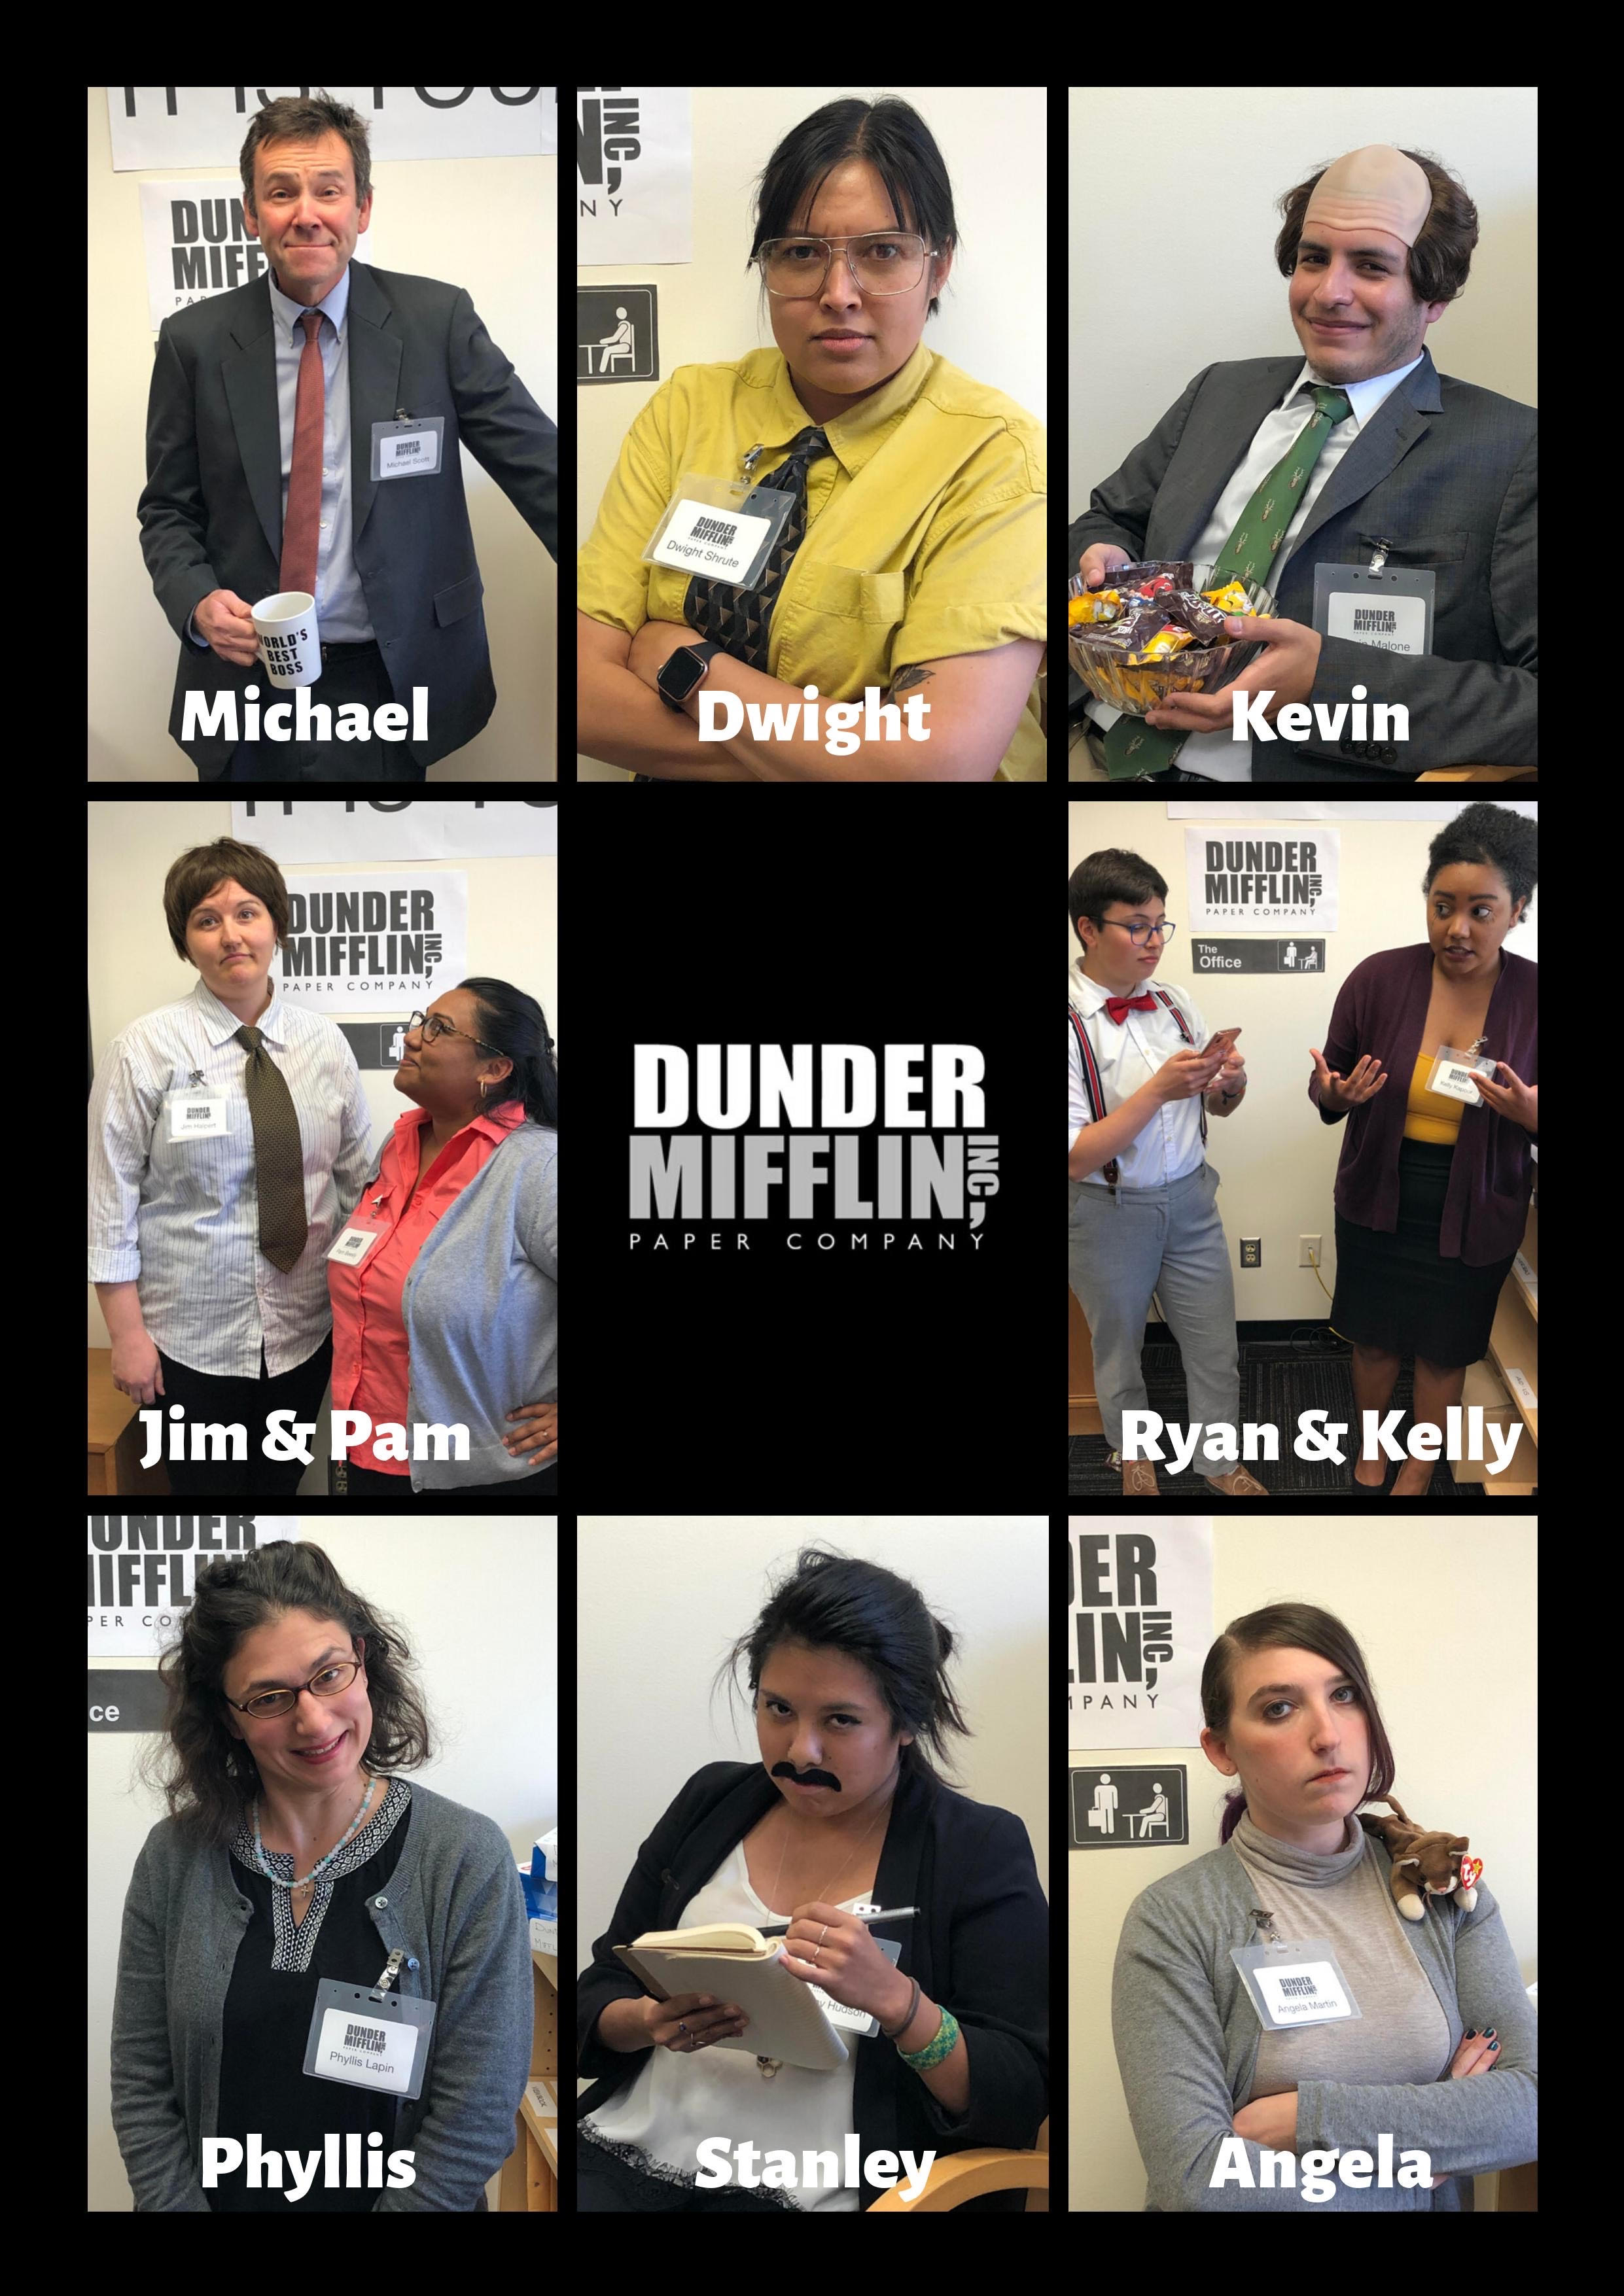 """23. """"Dunder Mifflin Paper Company from The Office"""" by Inclusion and Multicultural Engagement; International Students and Scholars"""